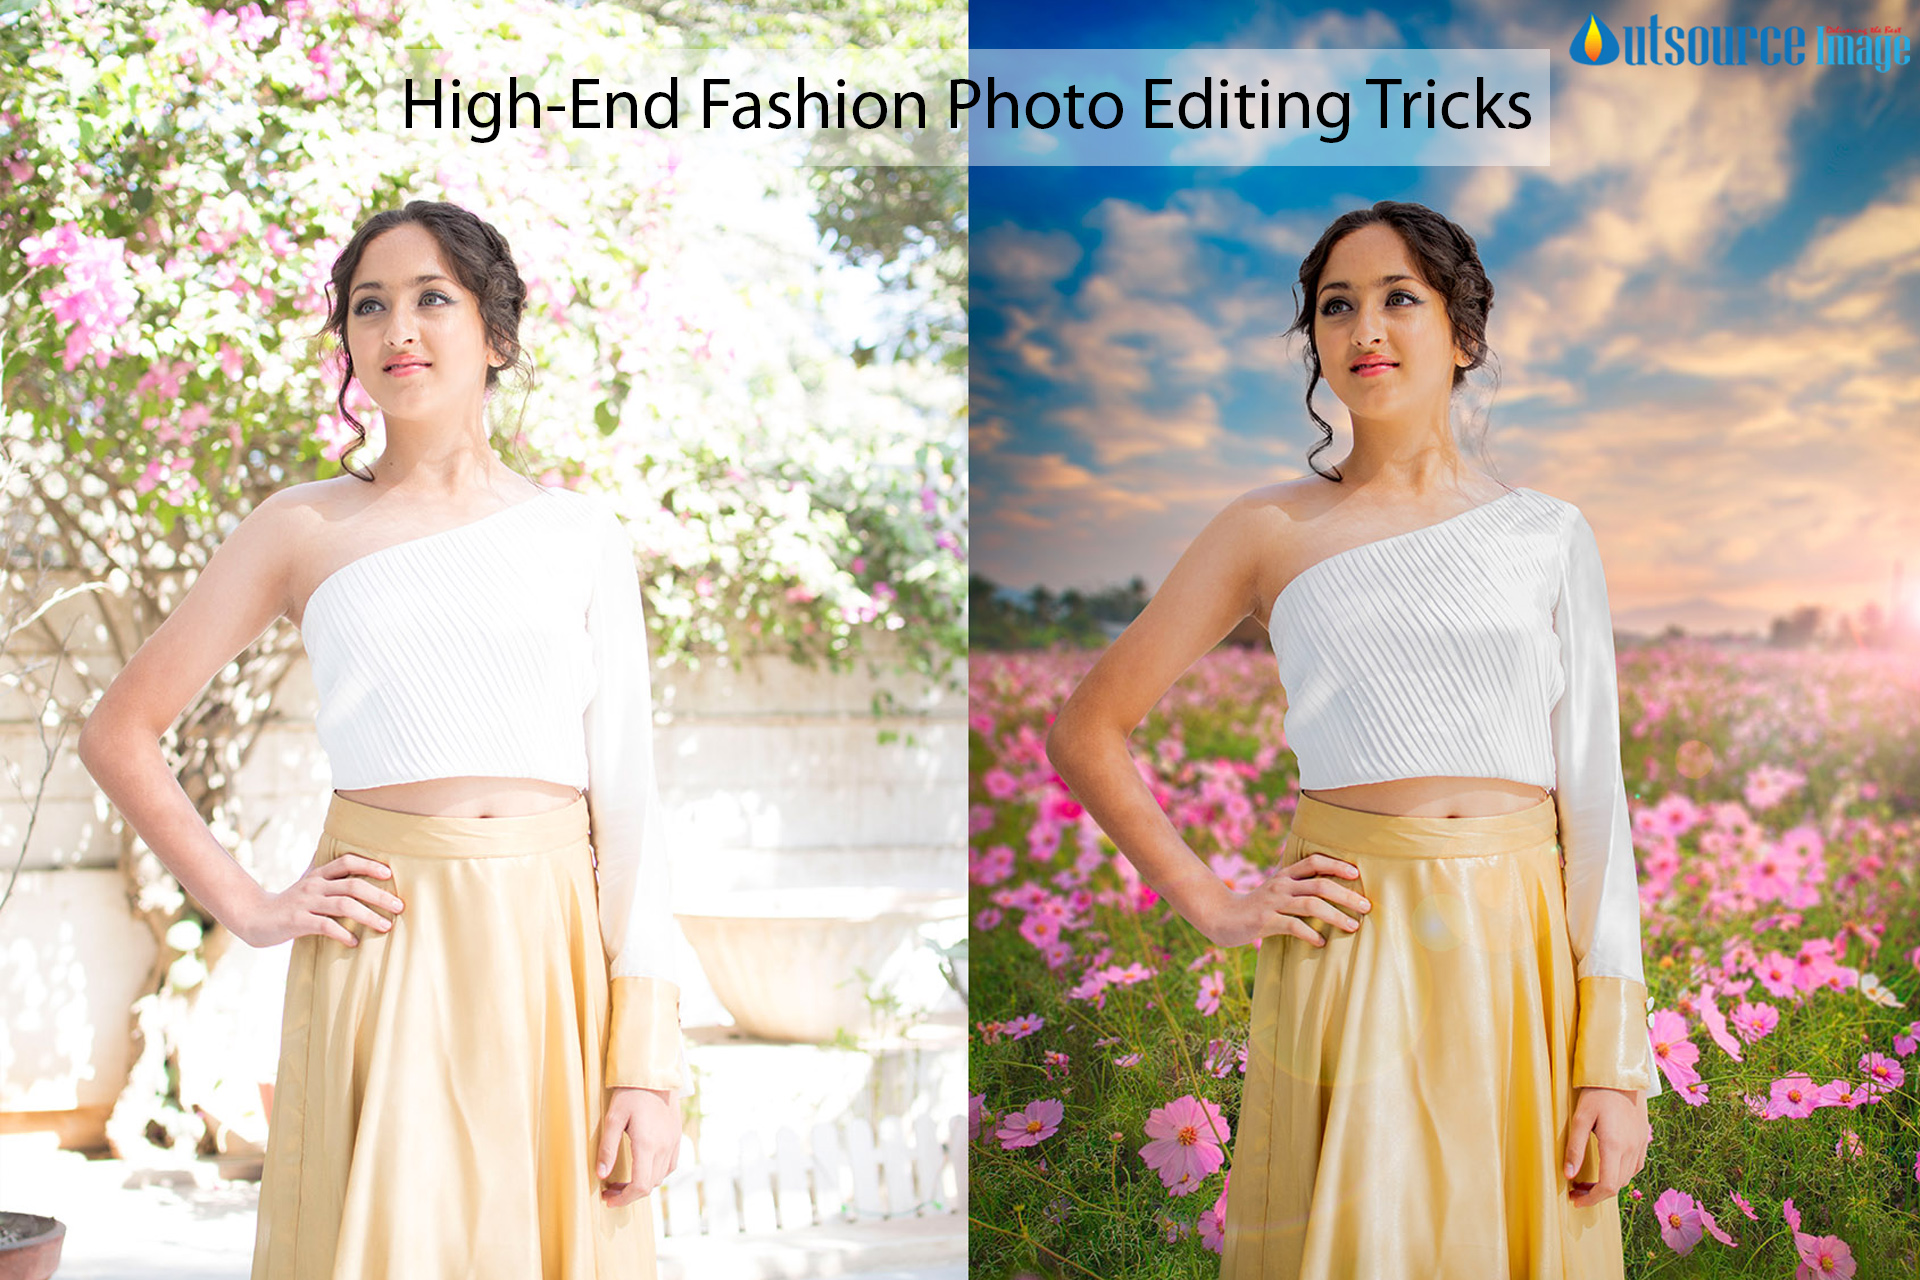 High-End Fashion Photo Editing Tricks | Image Retouching Services